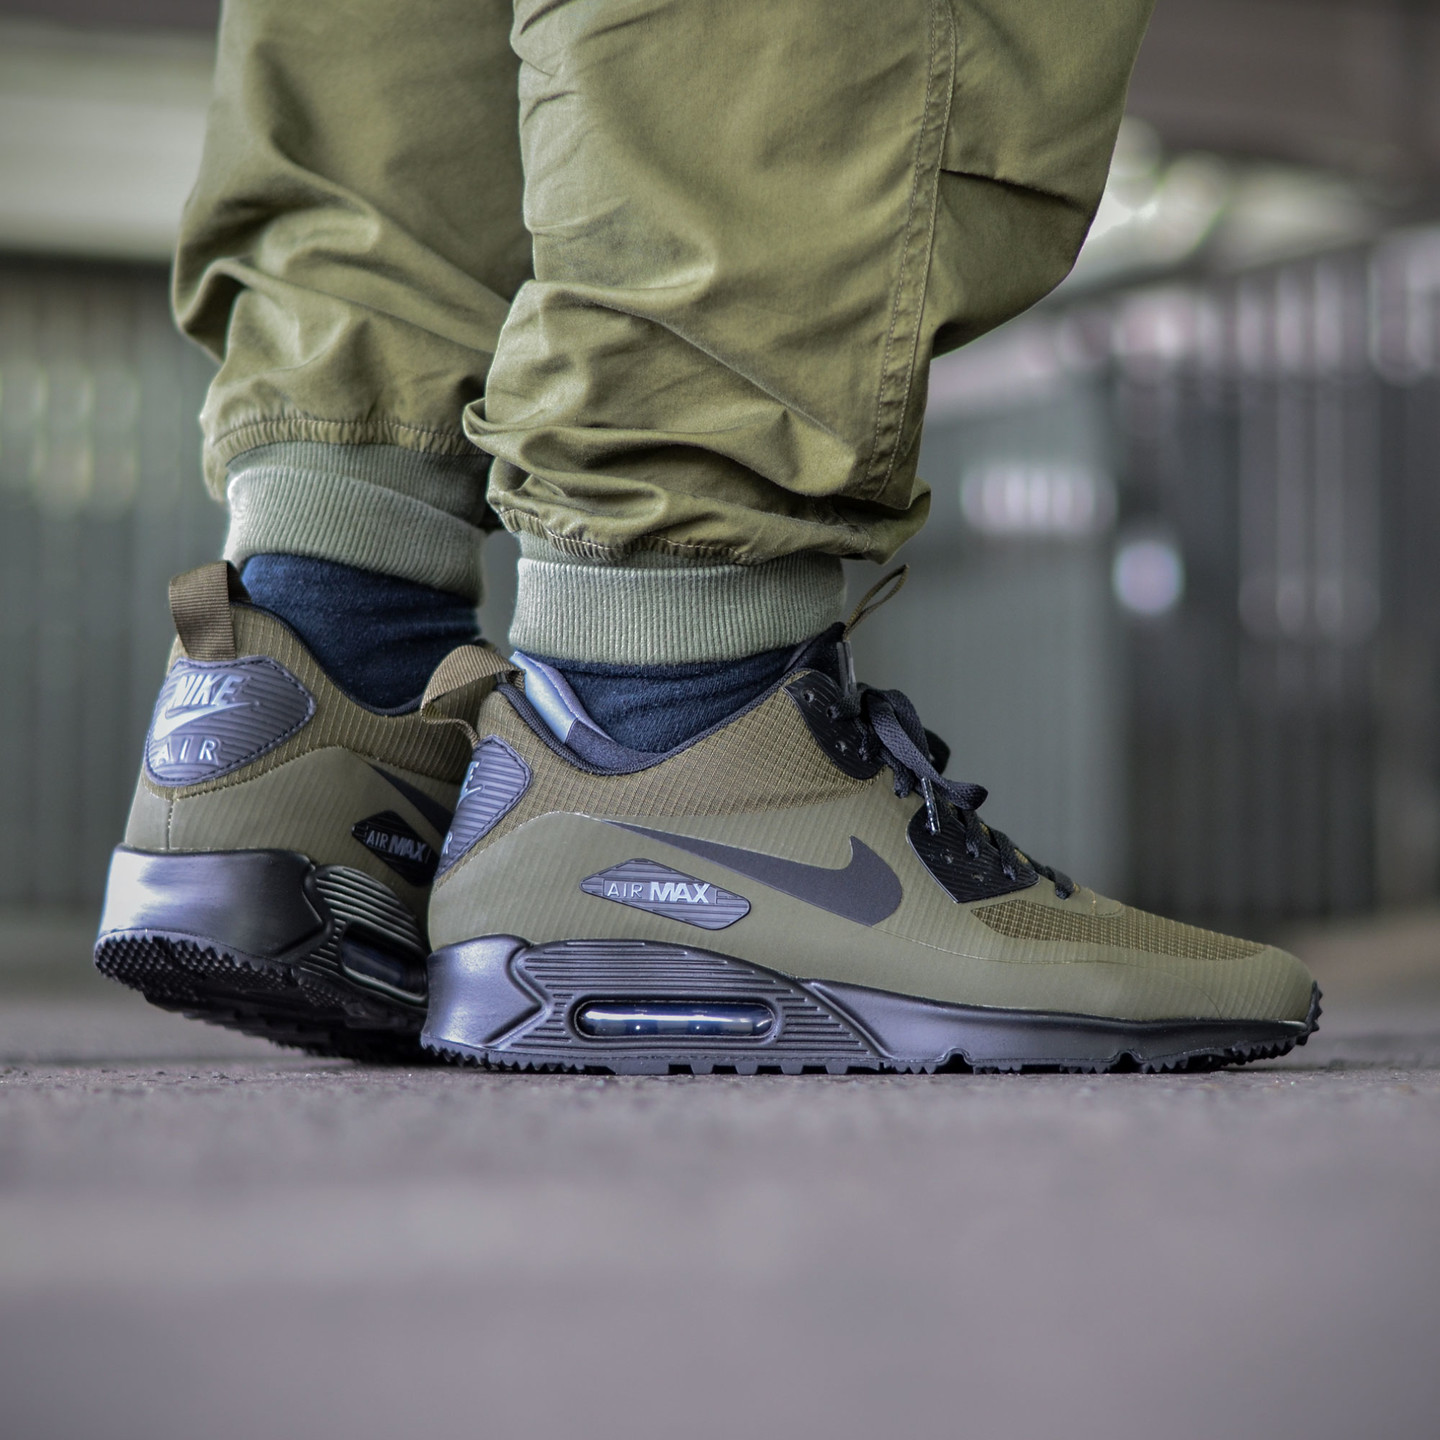 Nike Air Max 90 Mid Sneakerboot Dark Loden / Black / Dark Grey 806808-300-44